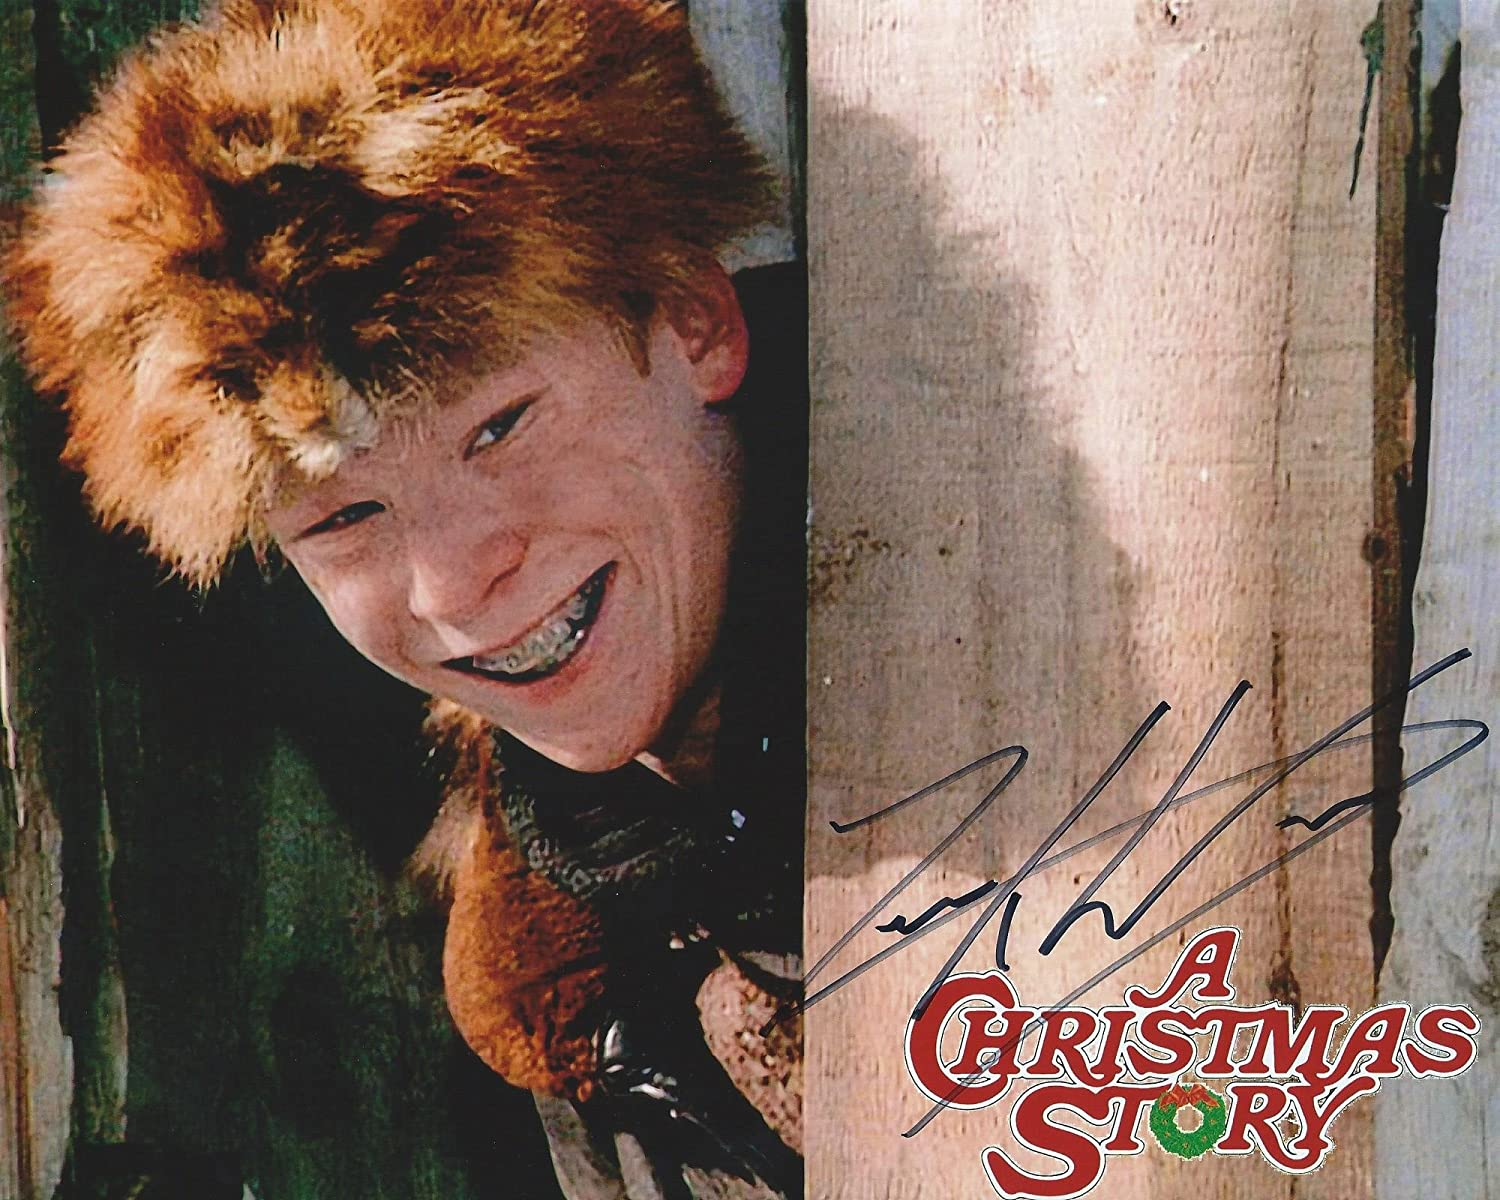 A Christmas Story Zack Ward as Scut Farkus Signed Autographed 8x10 ...